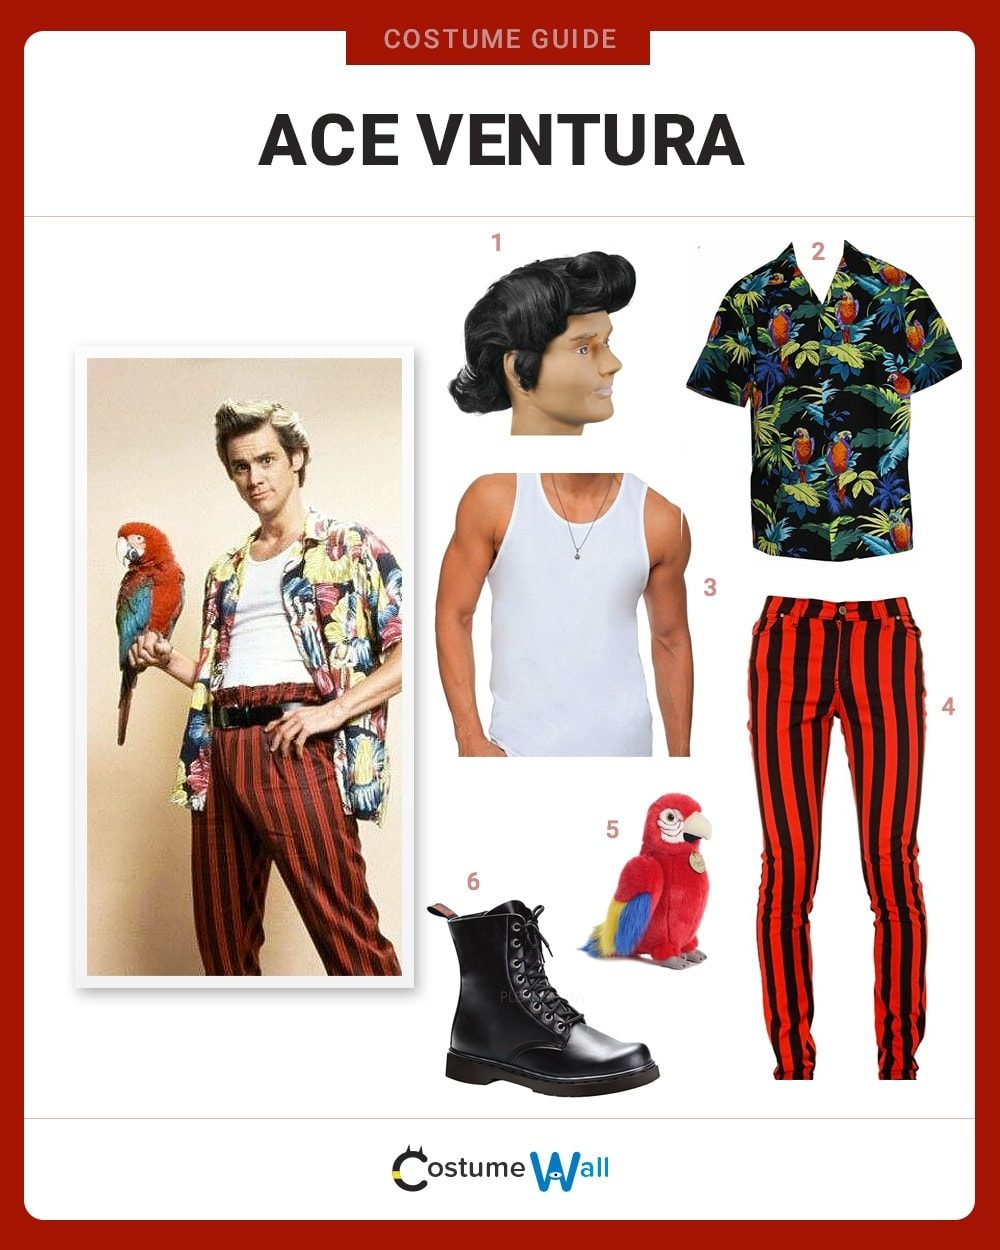 best ace ventura costume guide - Ace Ventura Halloween Costumes